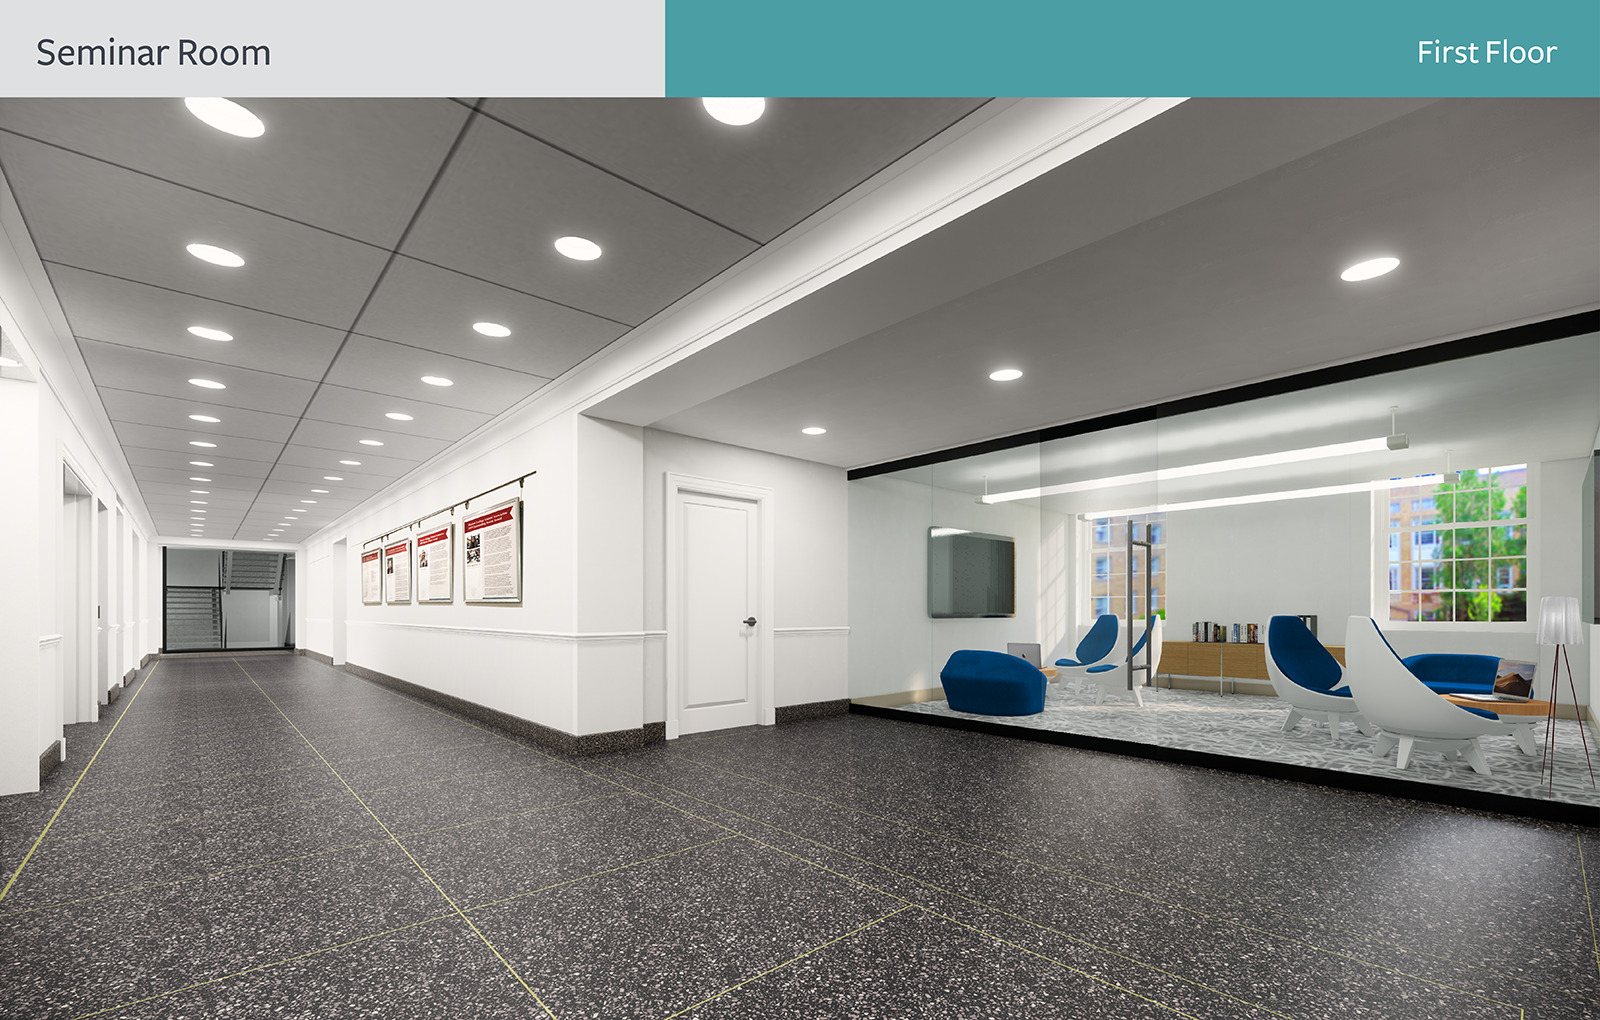 The rendering of seminar room, First floor